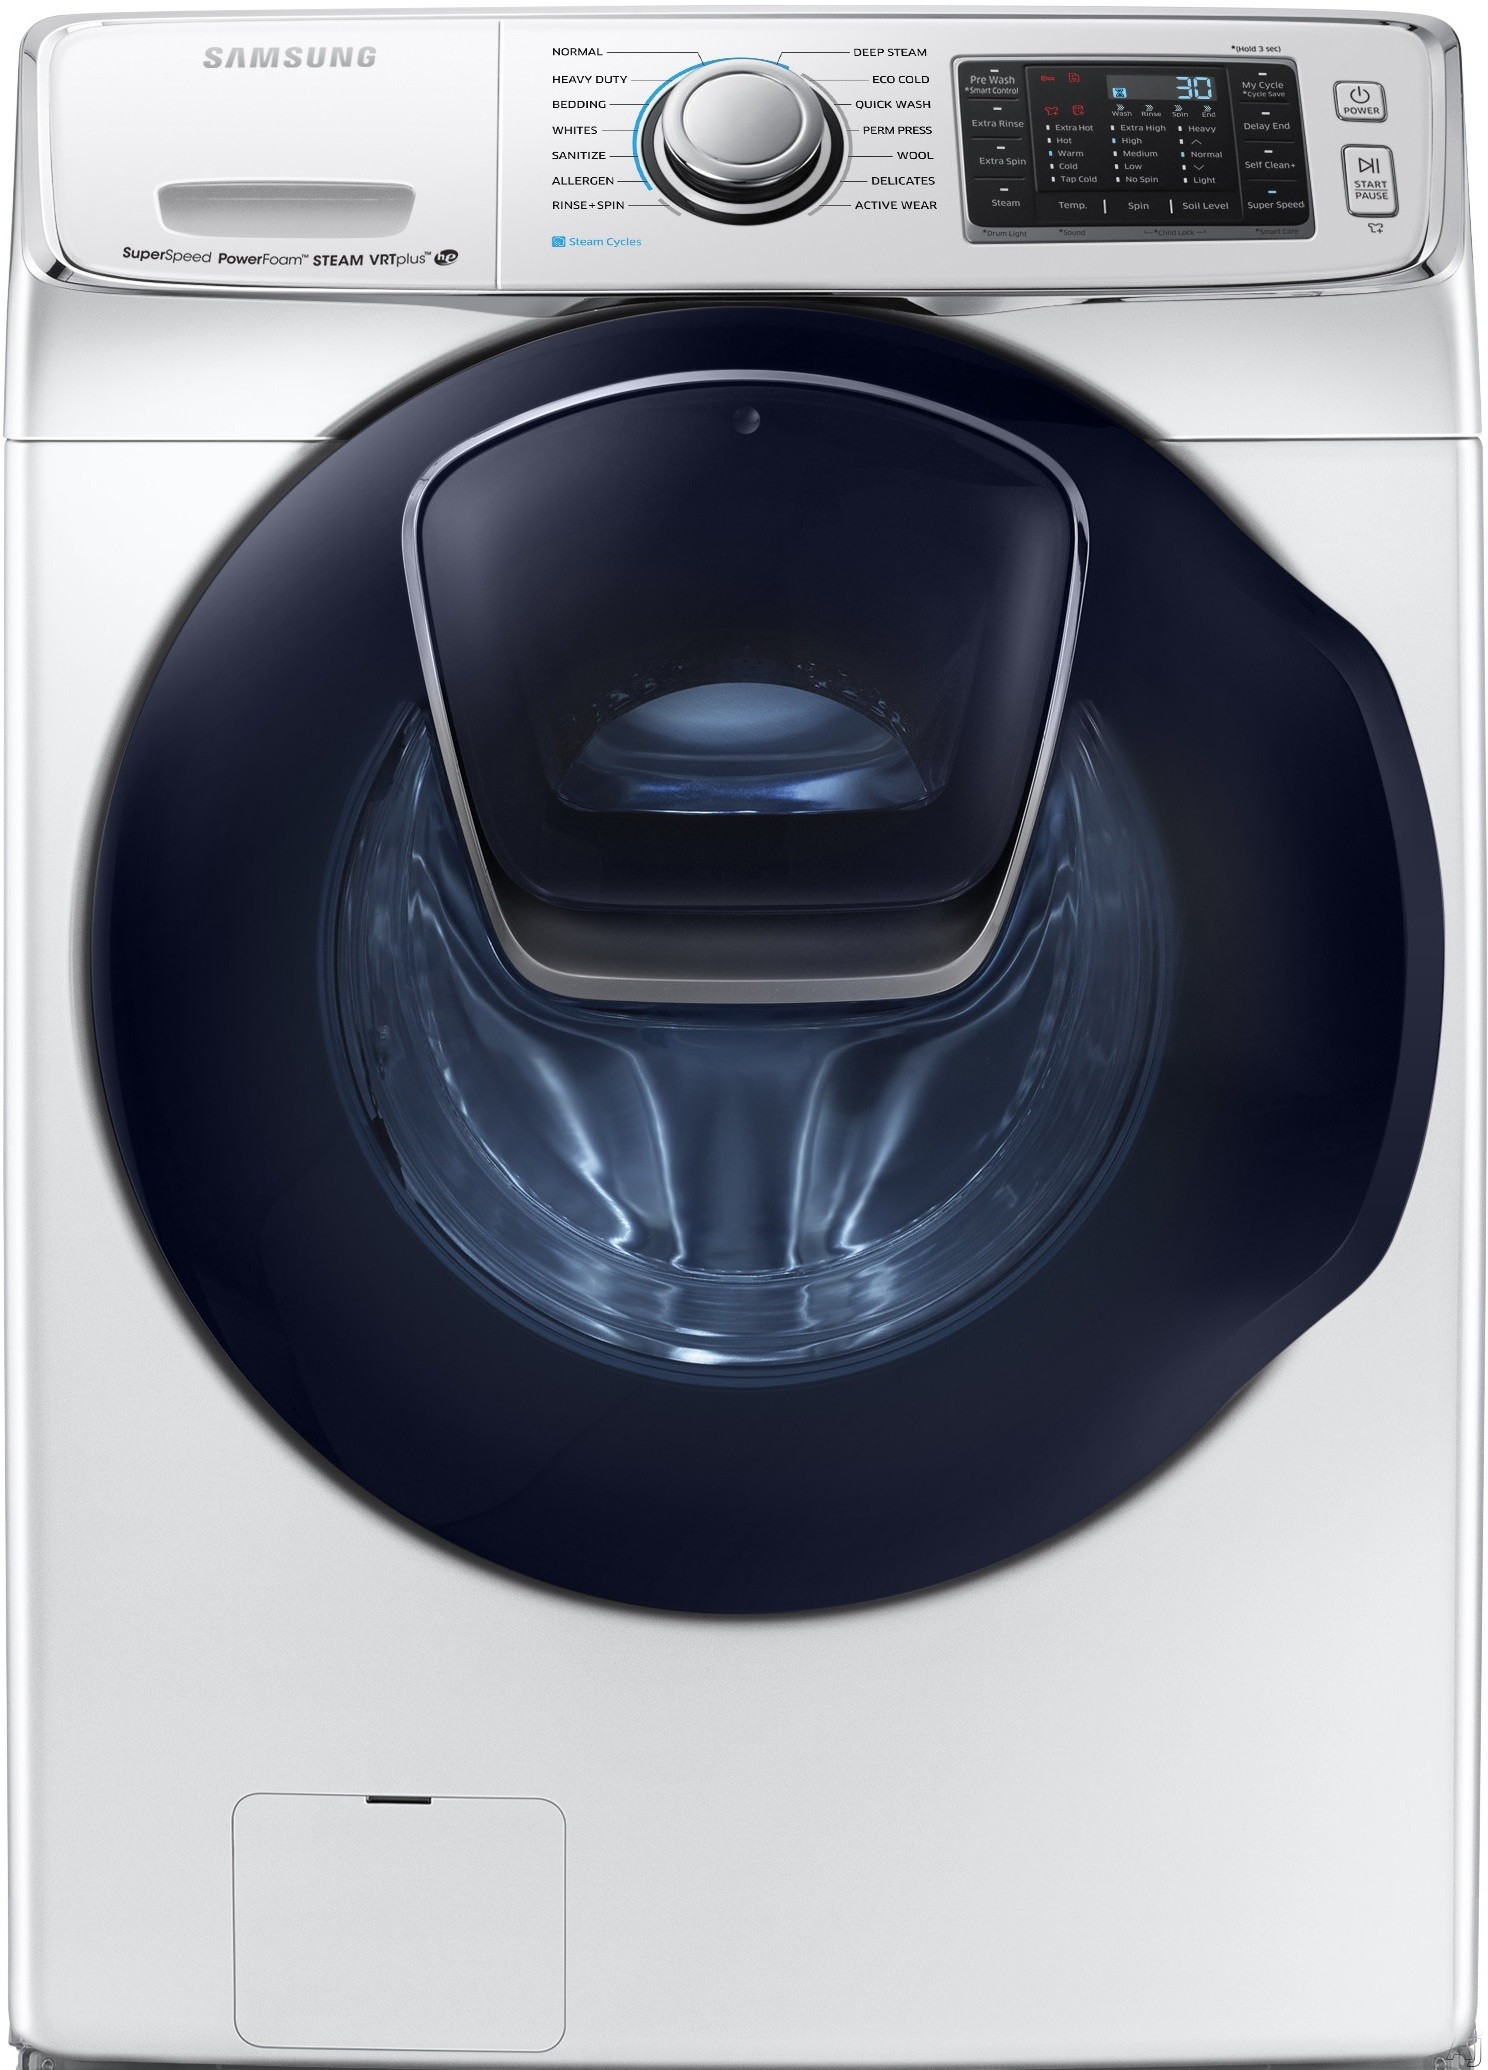 Samsung WF50K7500AW 27 Inch 5.0 cu. ft. Capacity Front-Load Washer with Super Speed, AddWash, 14 Preset Wash Cycles, 13 Wash Options, 1,300 RPM, Steam, PowerFoam, Smart Care, Vibration Reduction Plus, Self Clean Plus and Energy Star Rated: White WF50K750